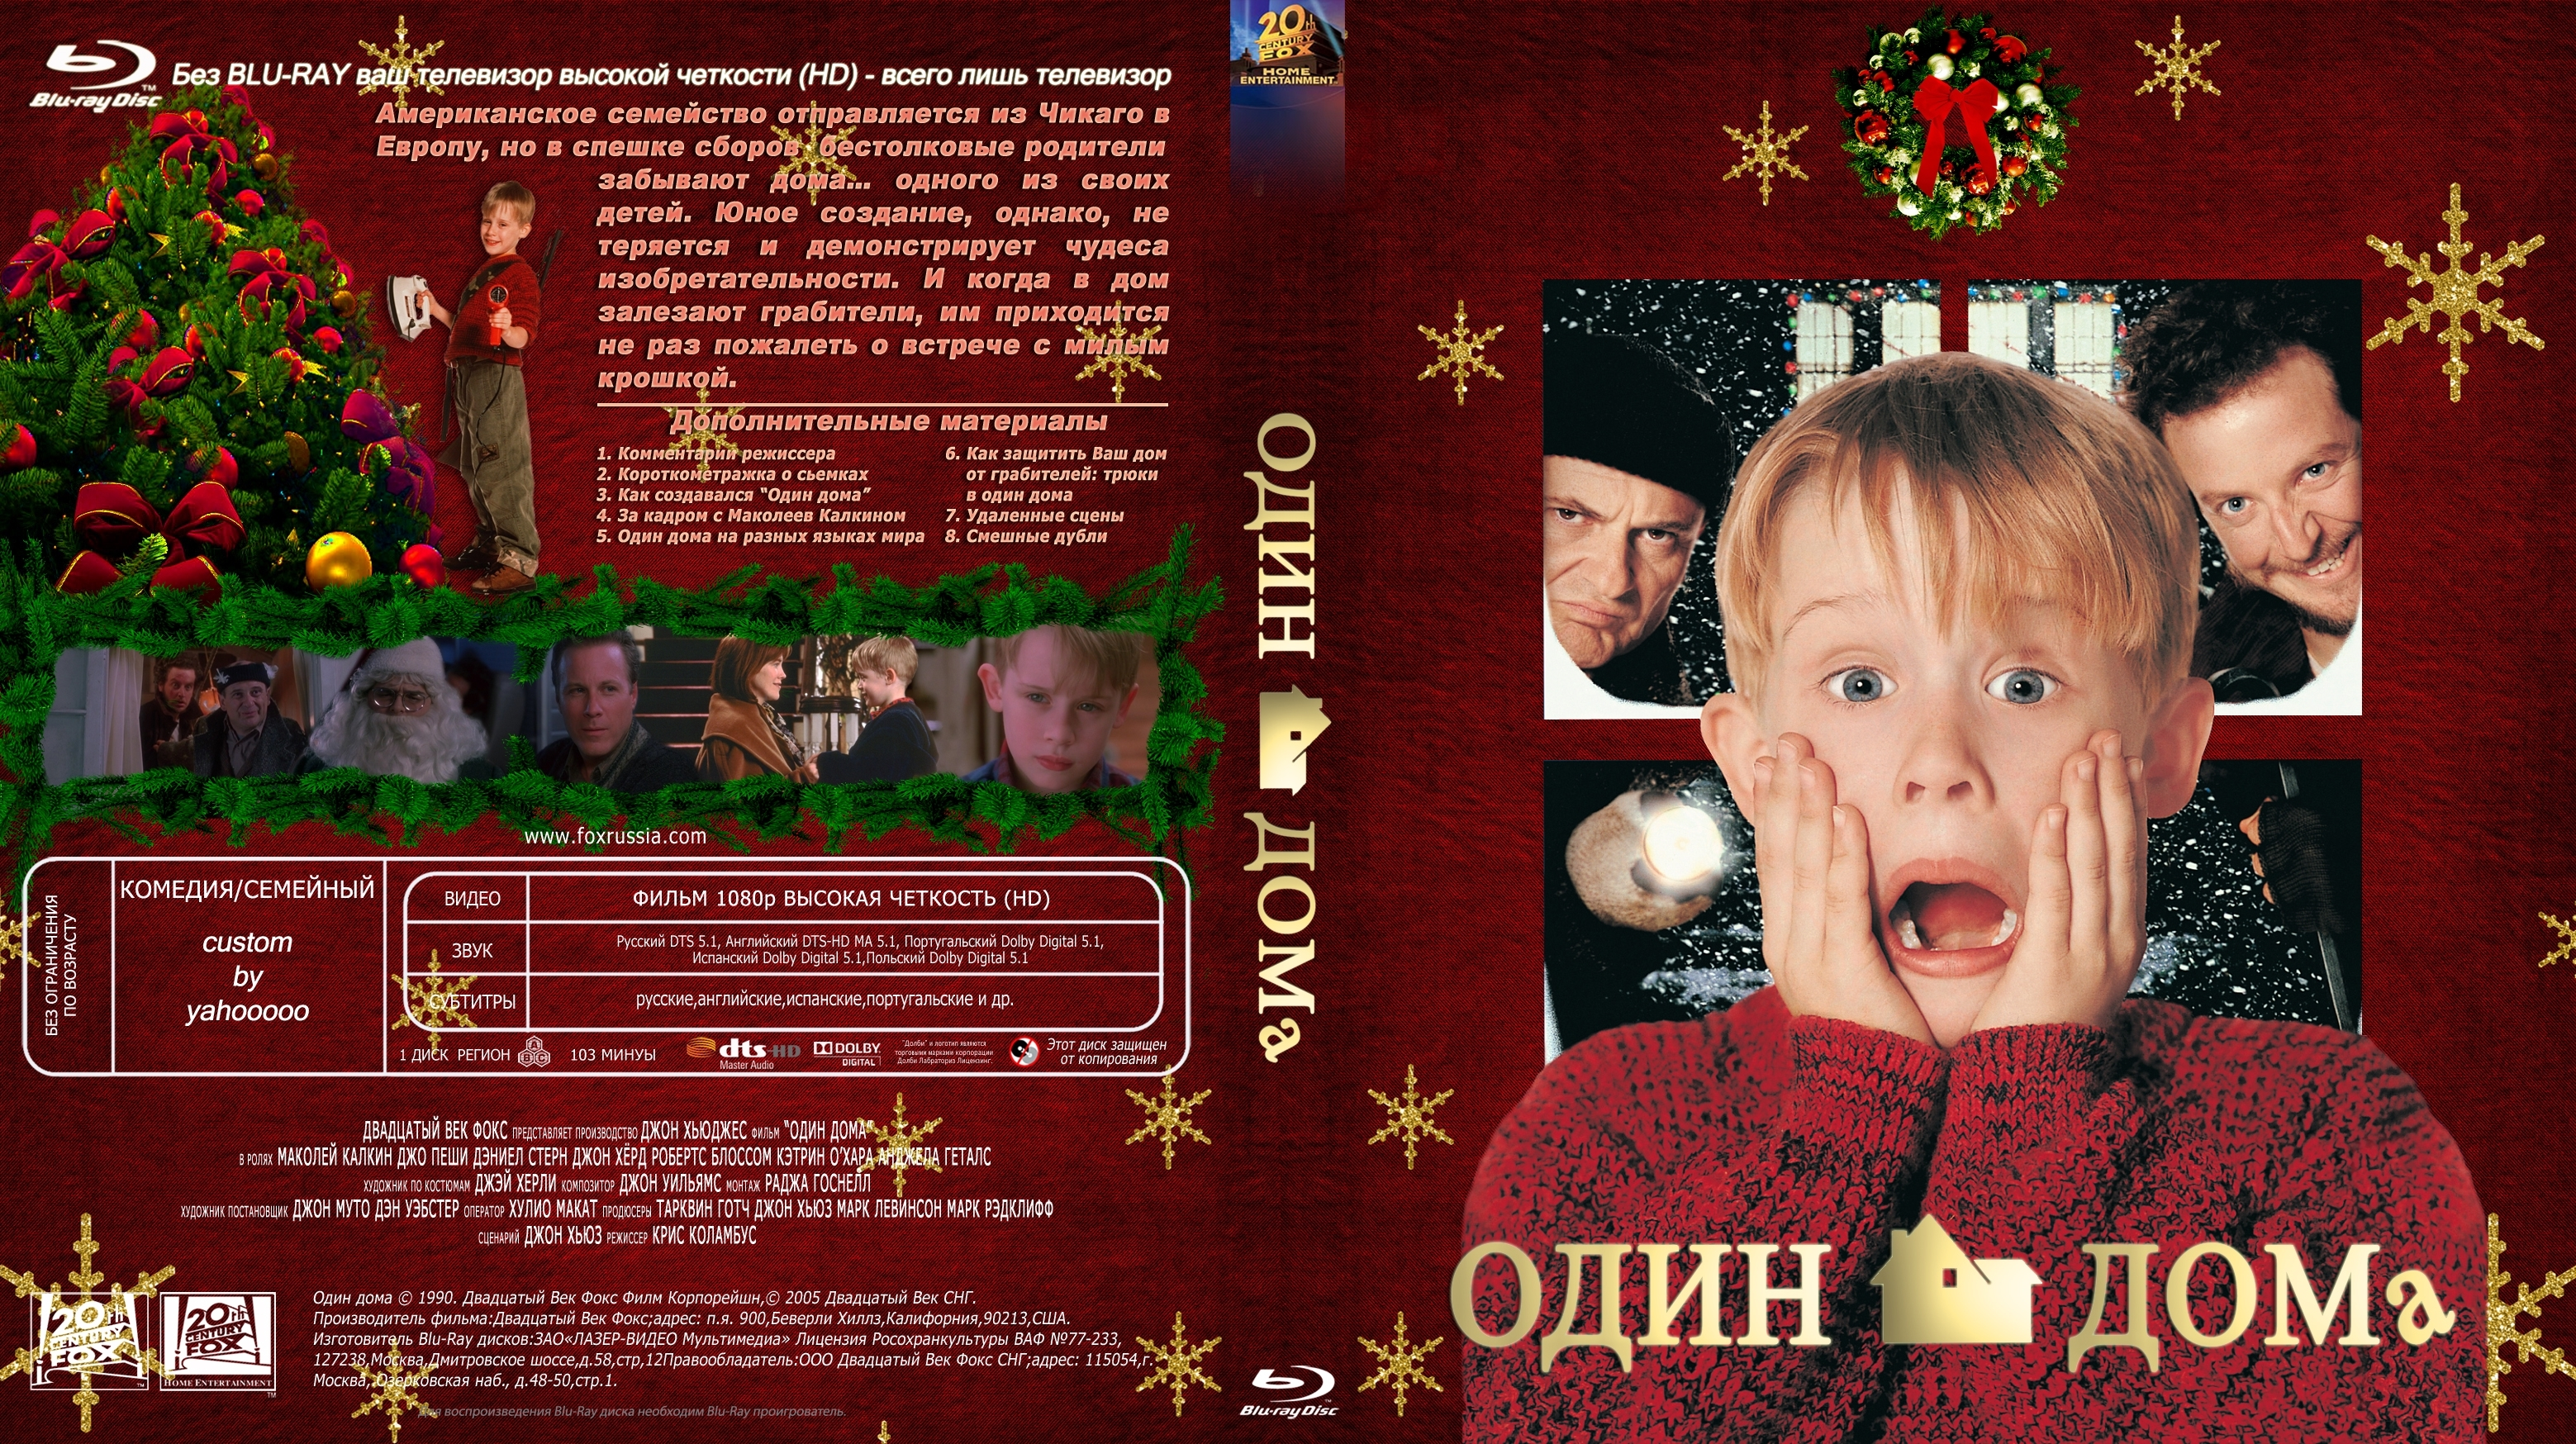 Home alone comedy christmas home alone poster g wallpaper for Wallpaper home alone